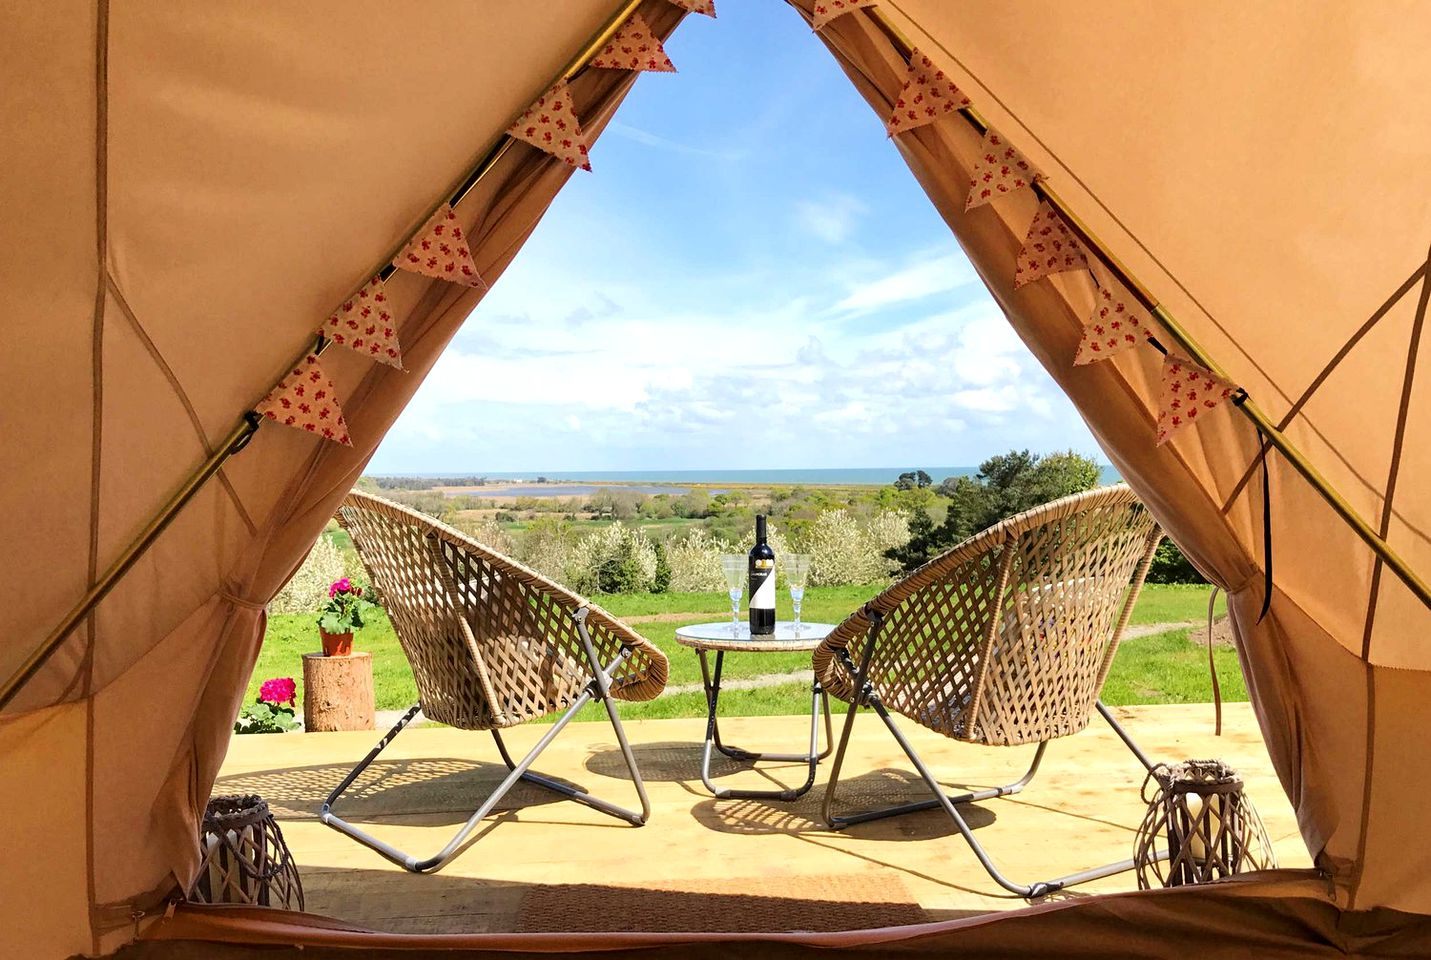 Bell Tents (Wicklow Town, County Wicklow, Ireland)